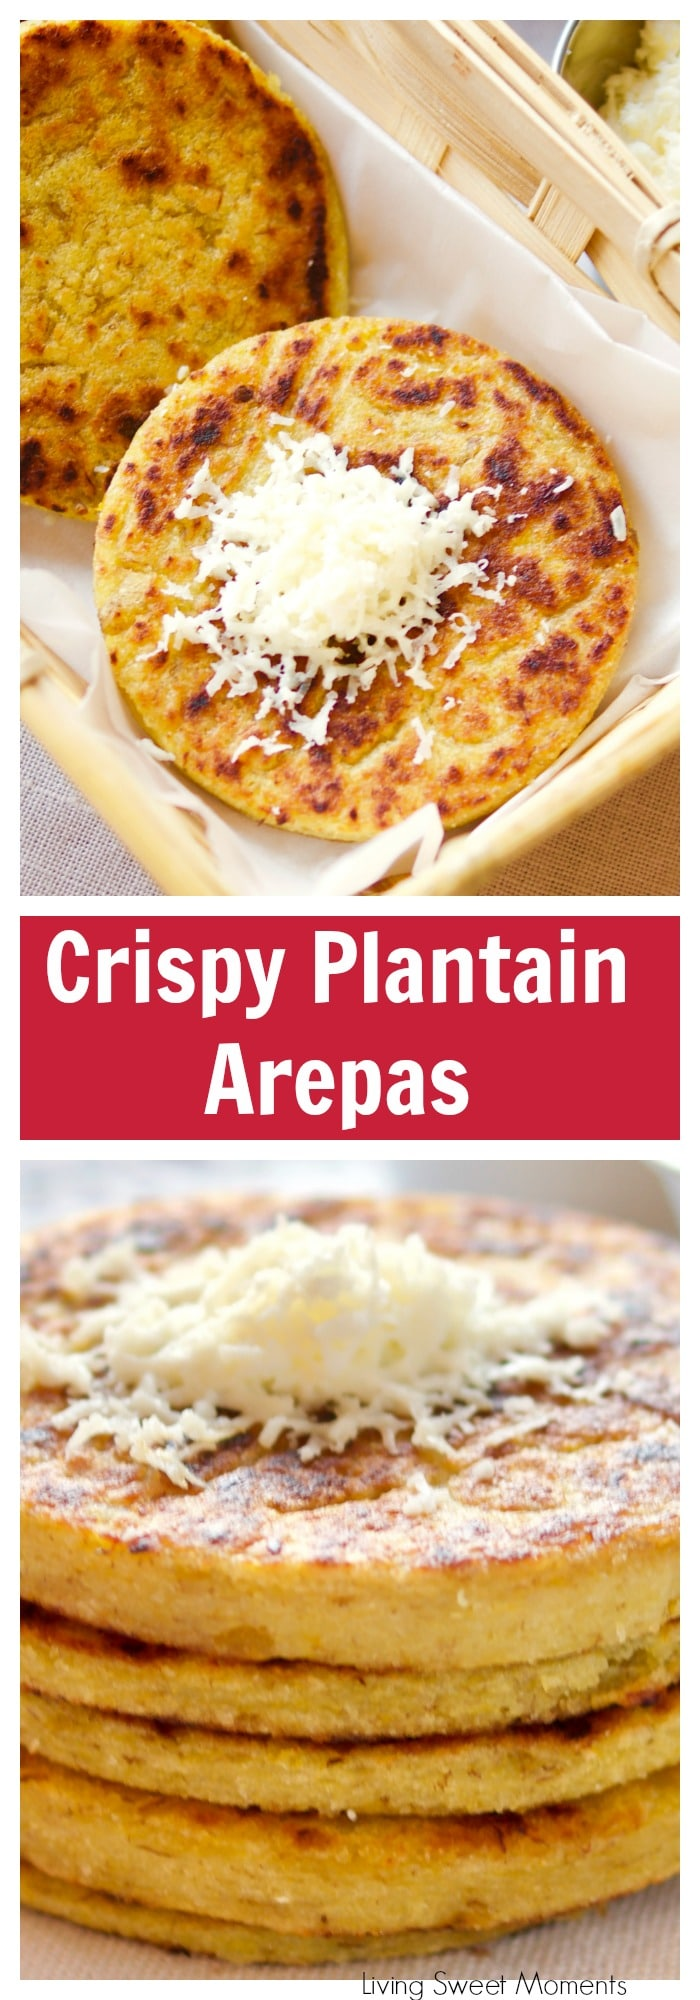 Prepare these easy and delicious Plantain Arepas. Crispy on the outside, soft on the inside, with a touch little sweetness. Serve with shredded cheese. For more gluten free recipes visit Livingsweetmoments.com